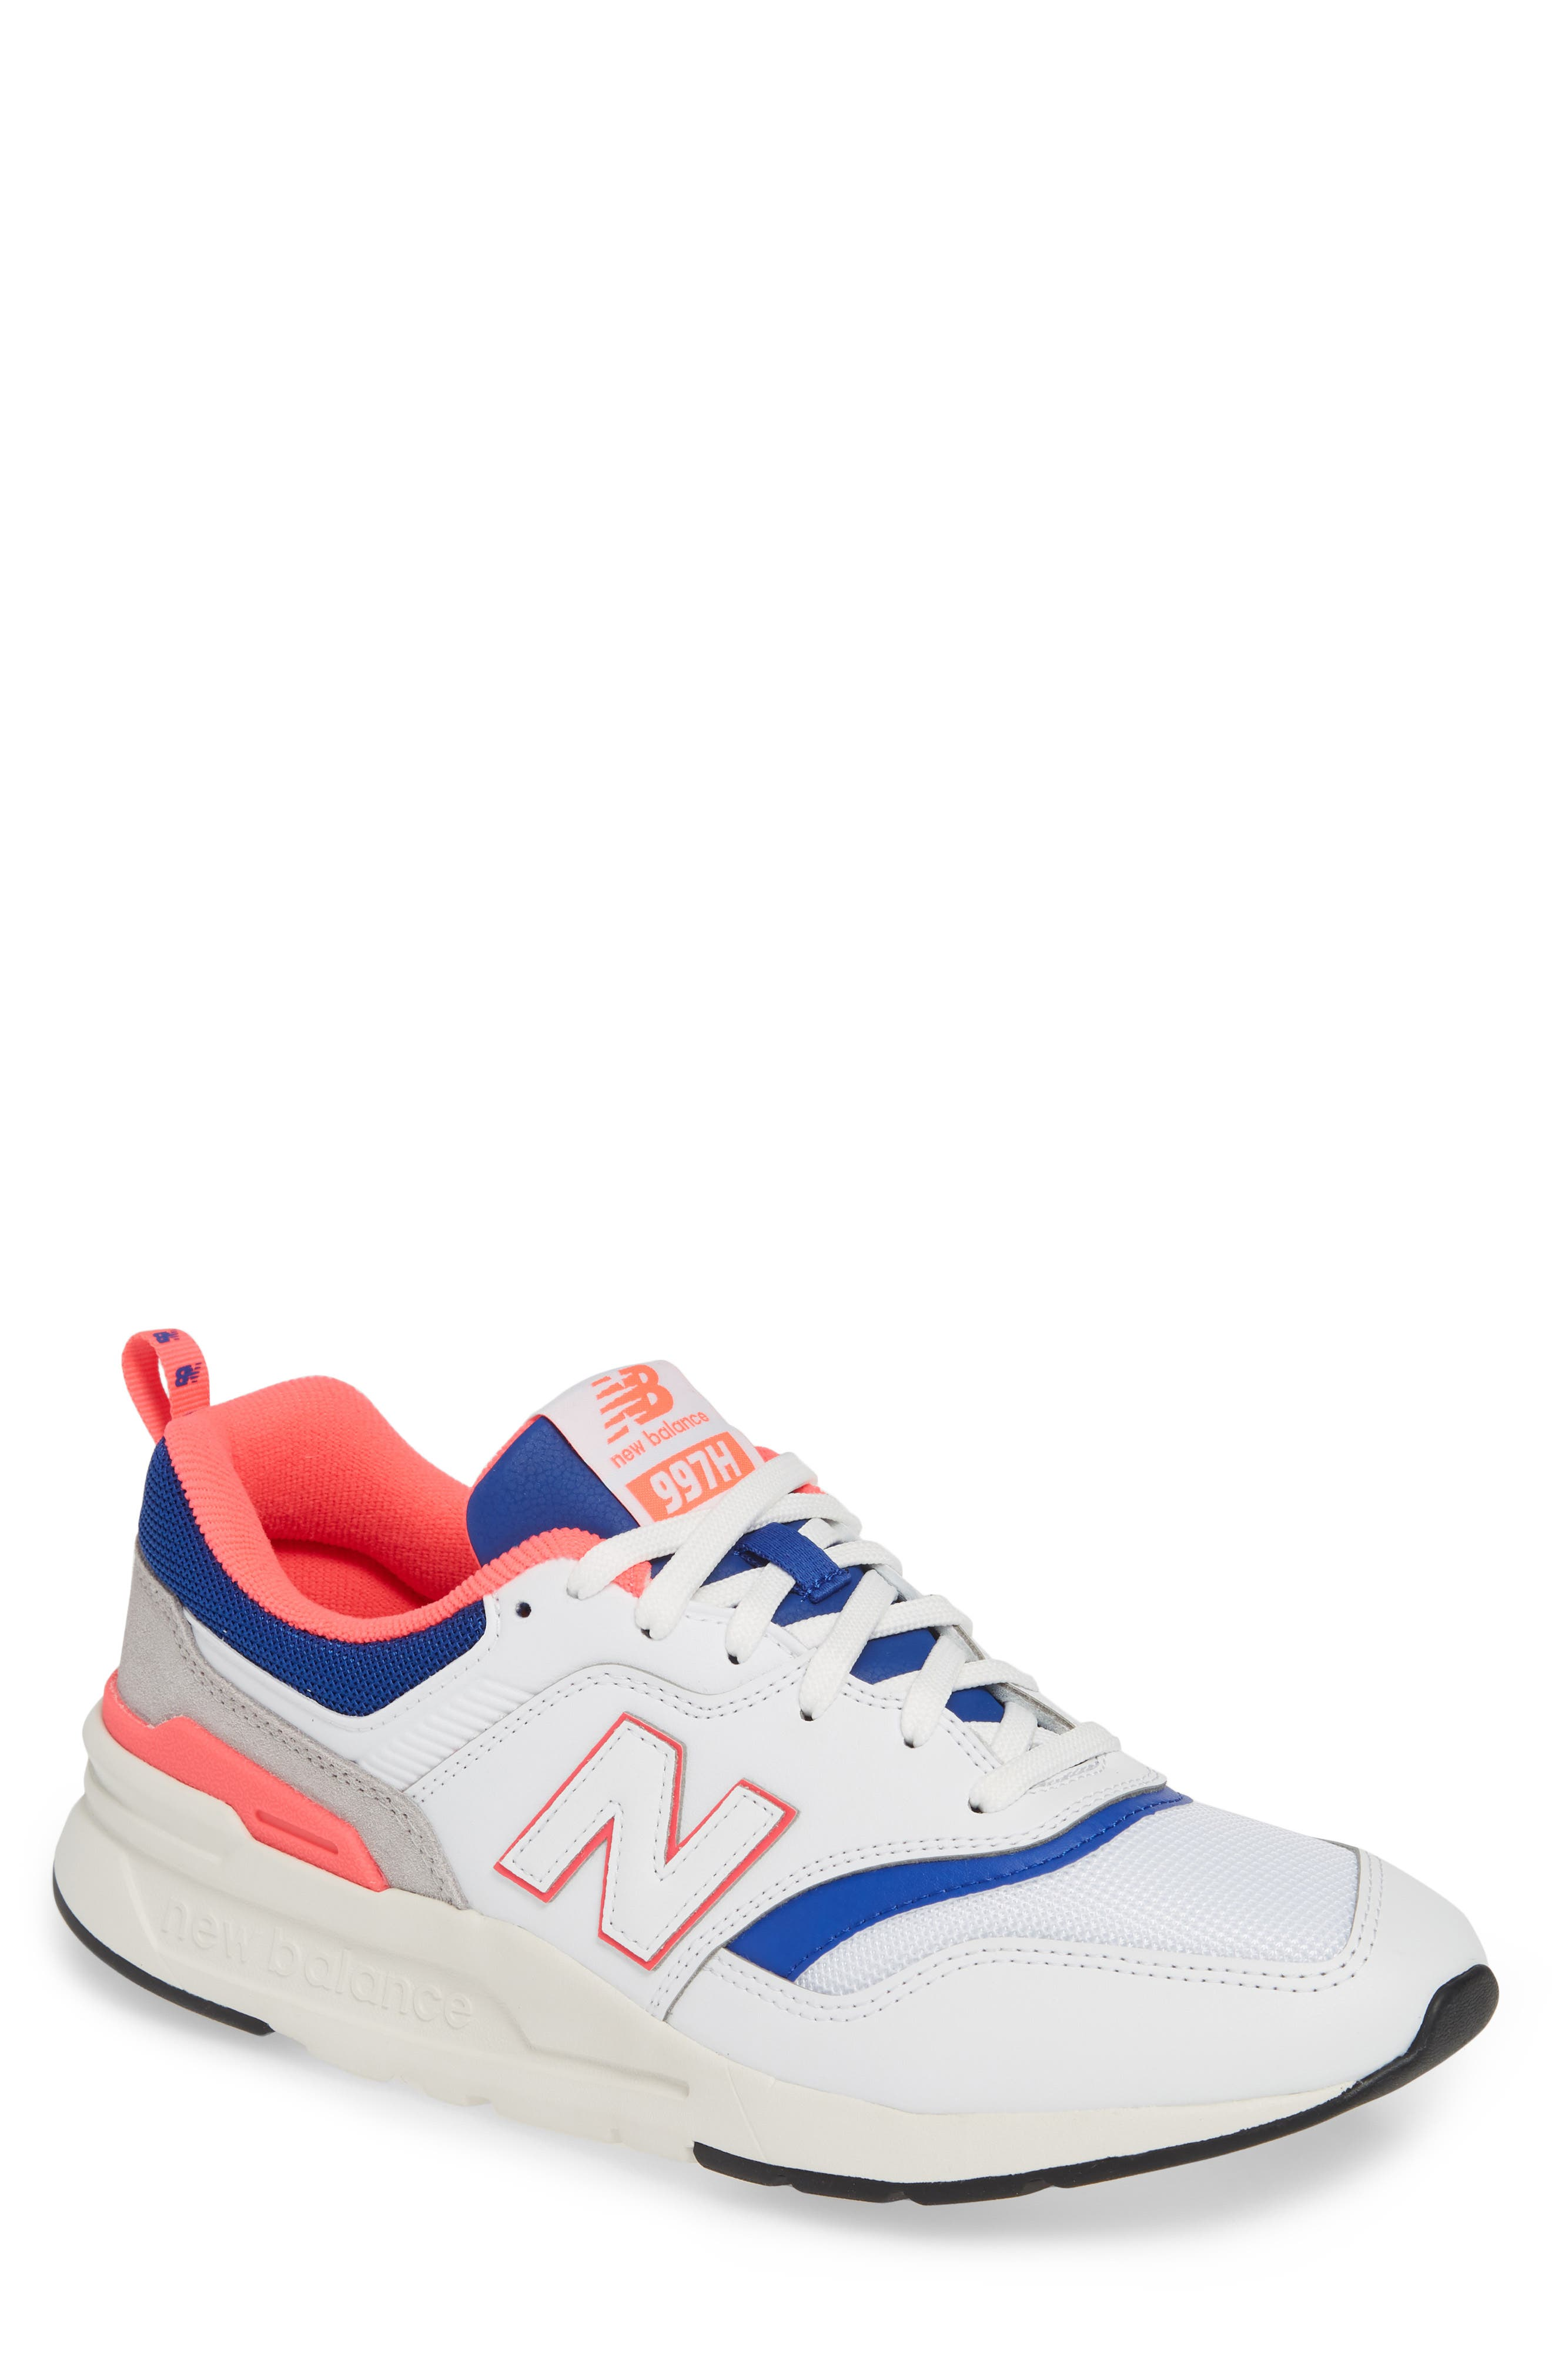 aeabd74eec392 White New Balance Running Shoes